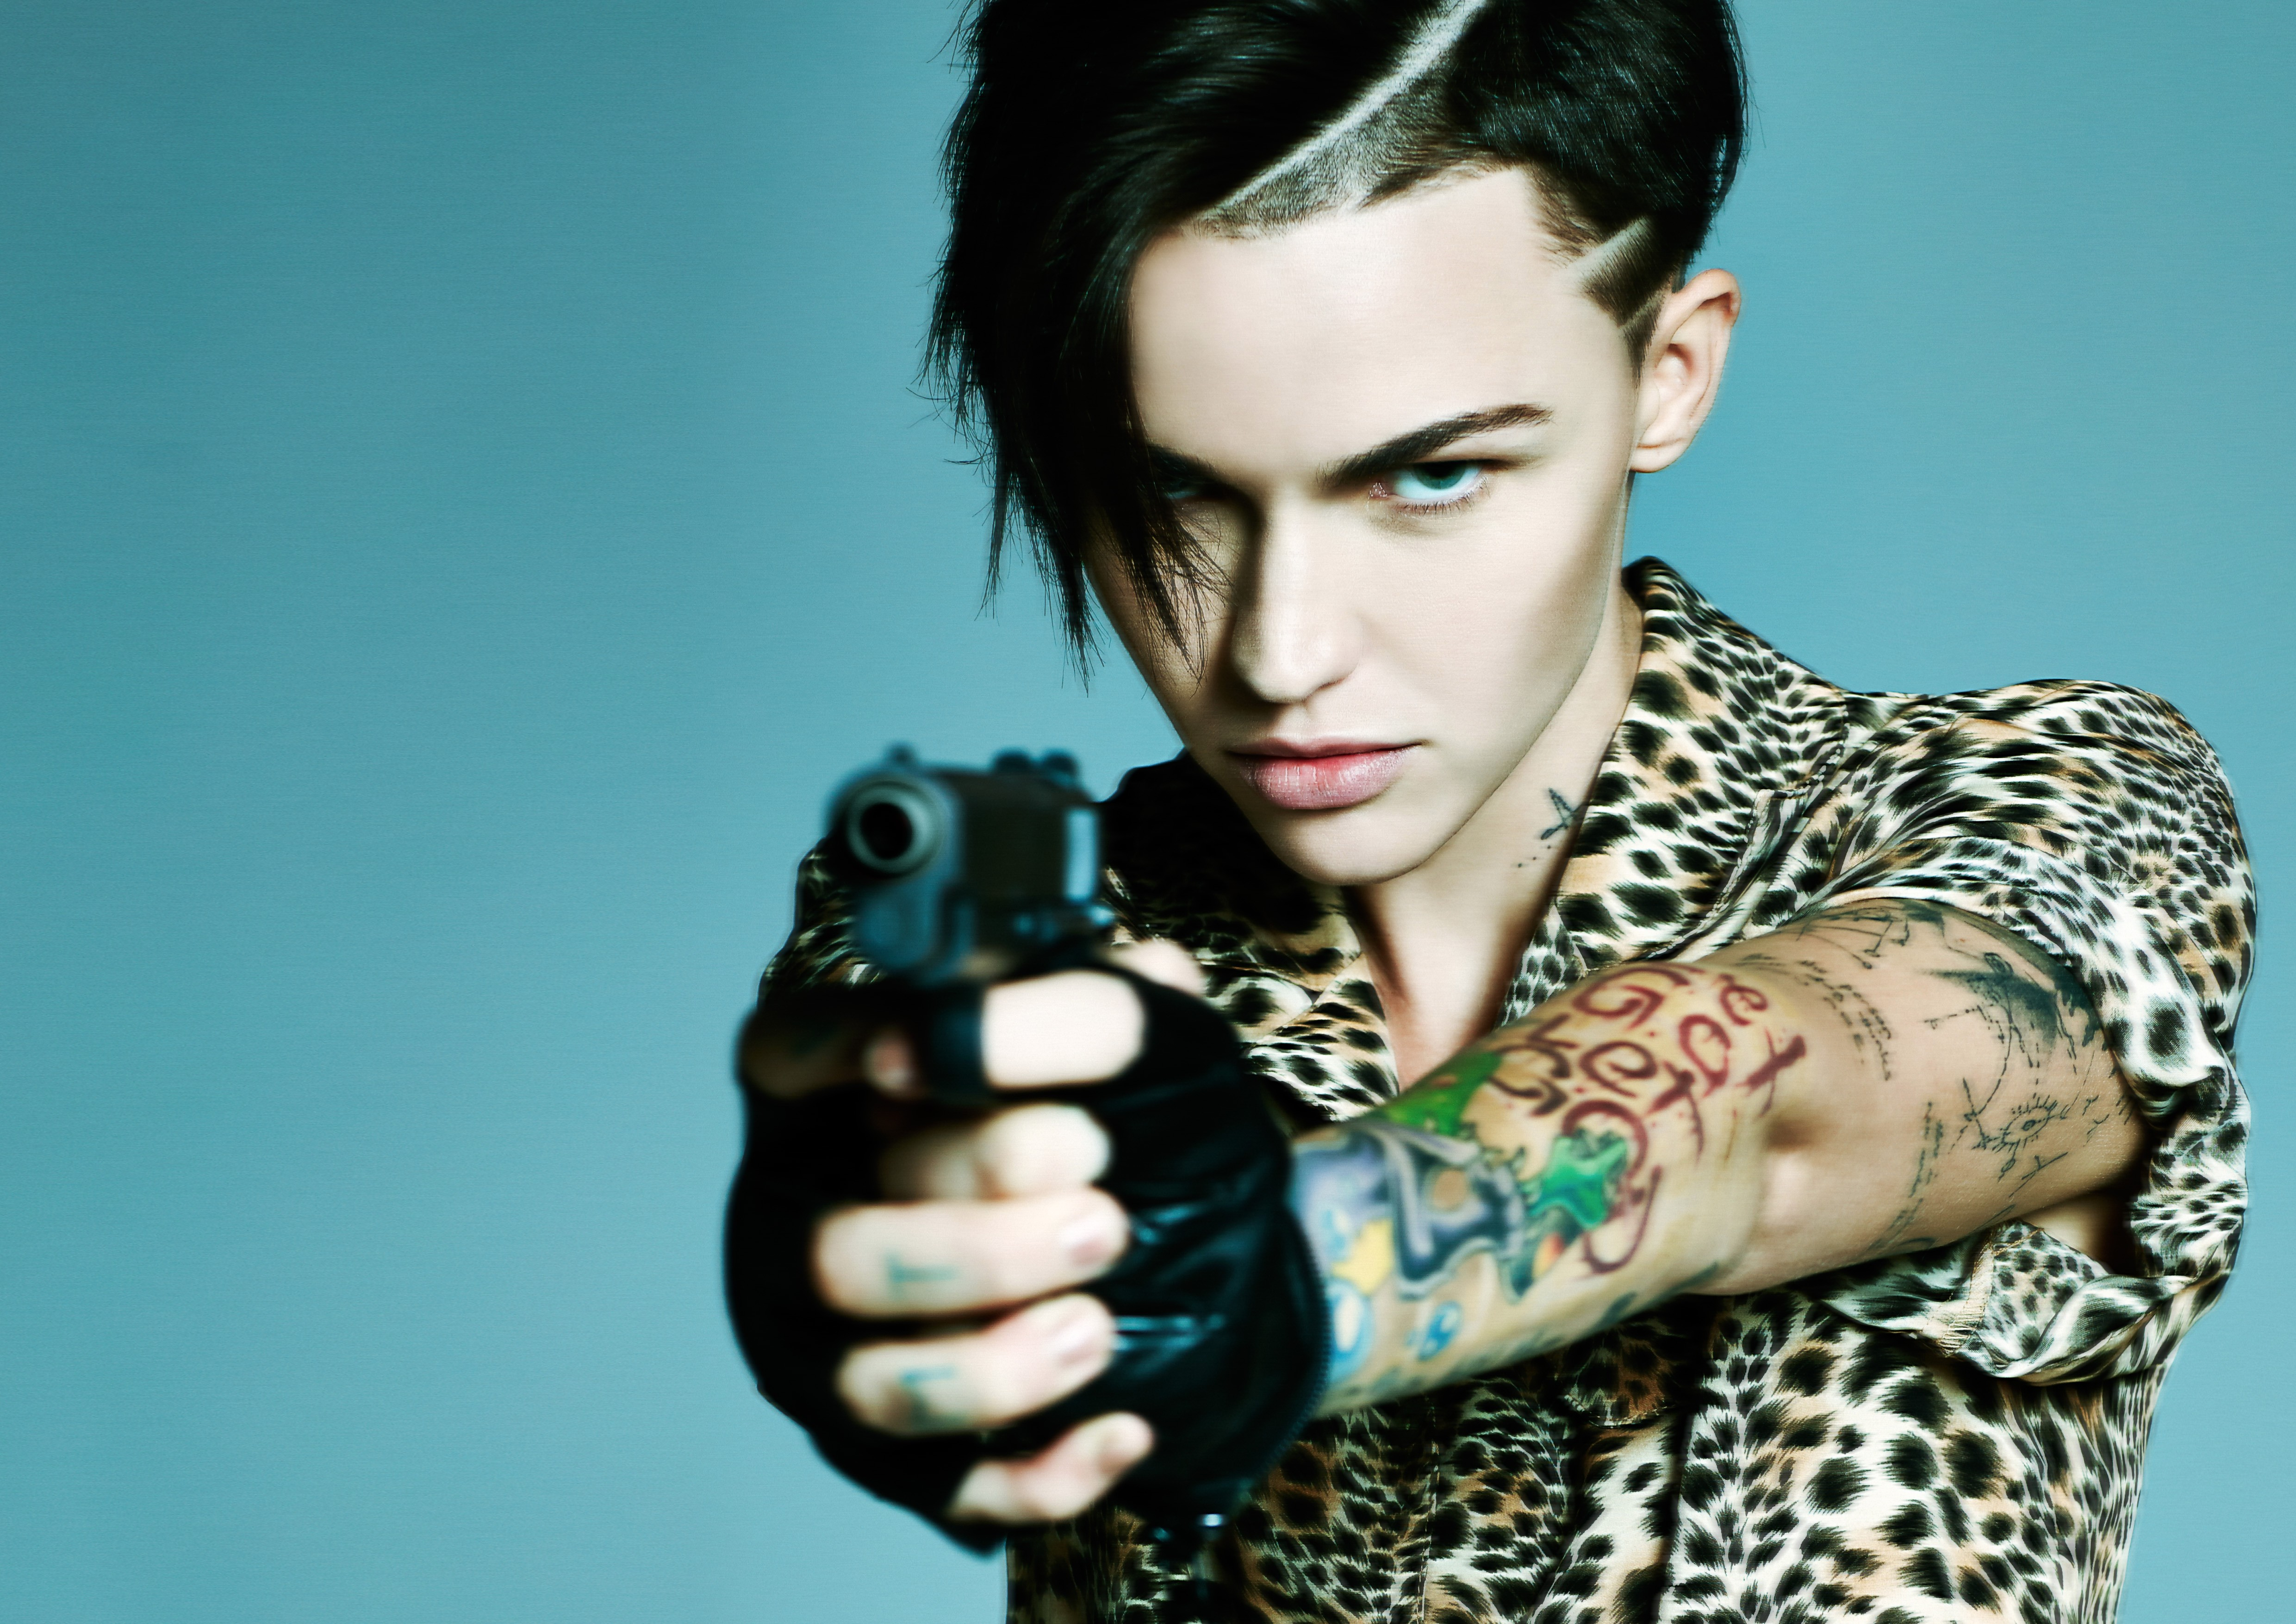 4961x3508 - Ruby Rose Wallpapers 11